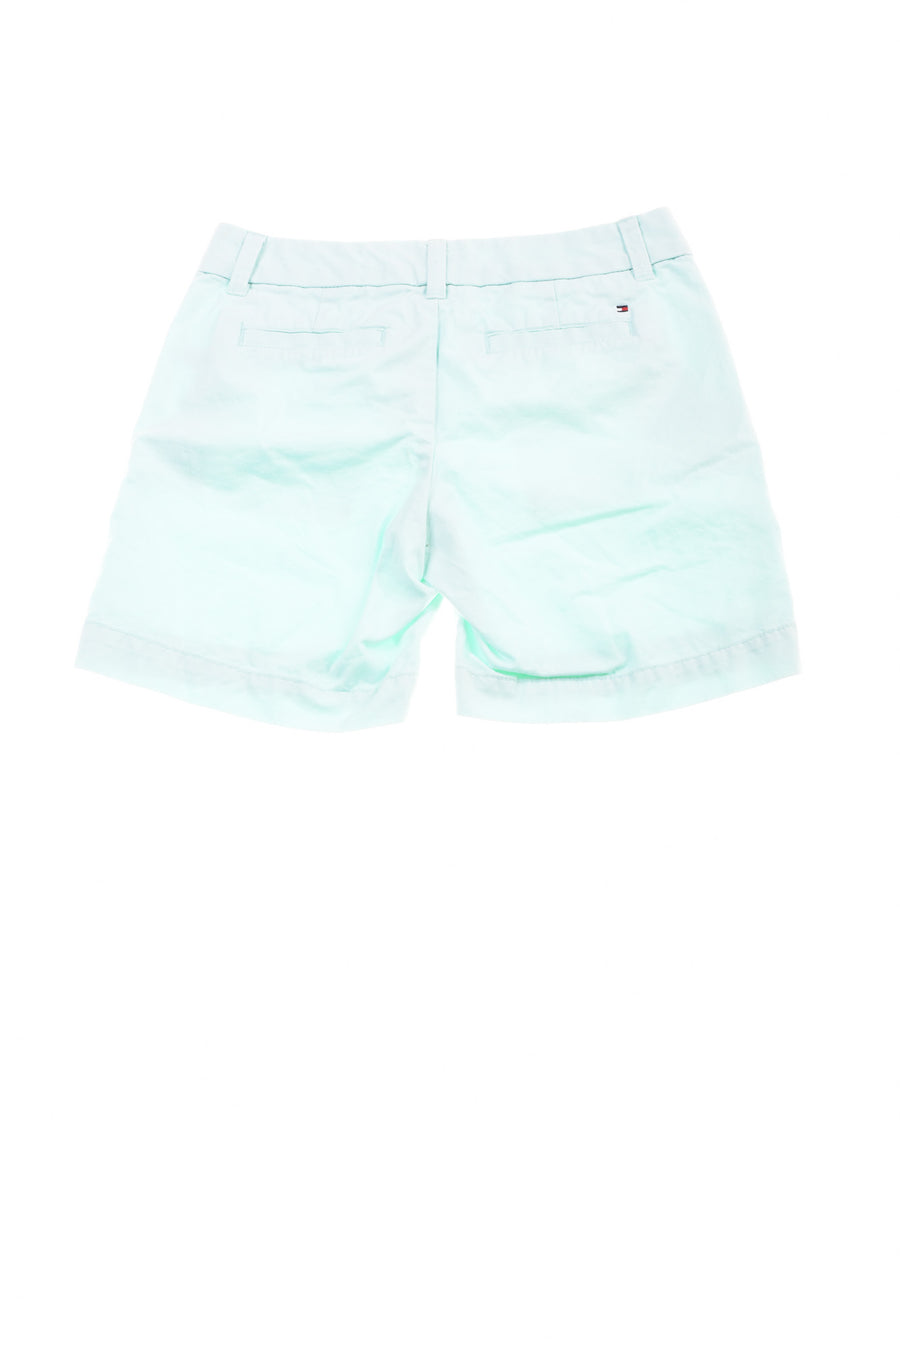 USED Tommy Hilfiger Women Shorts 00 Mint Green